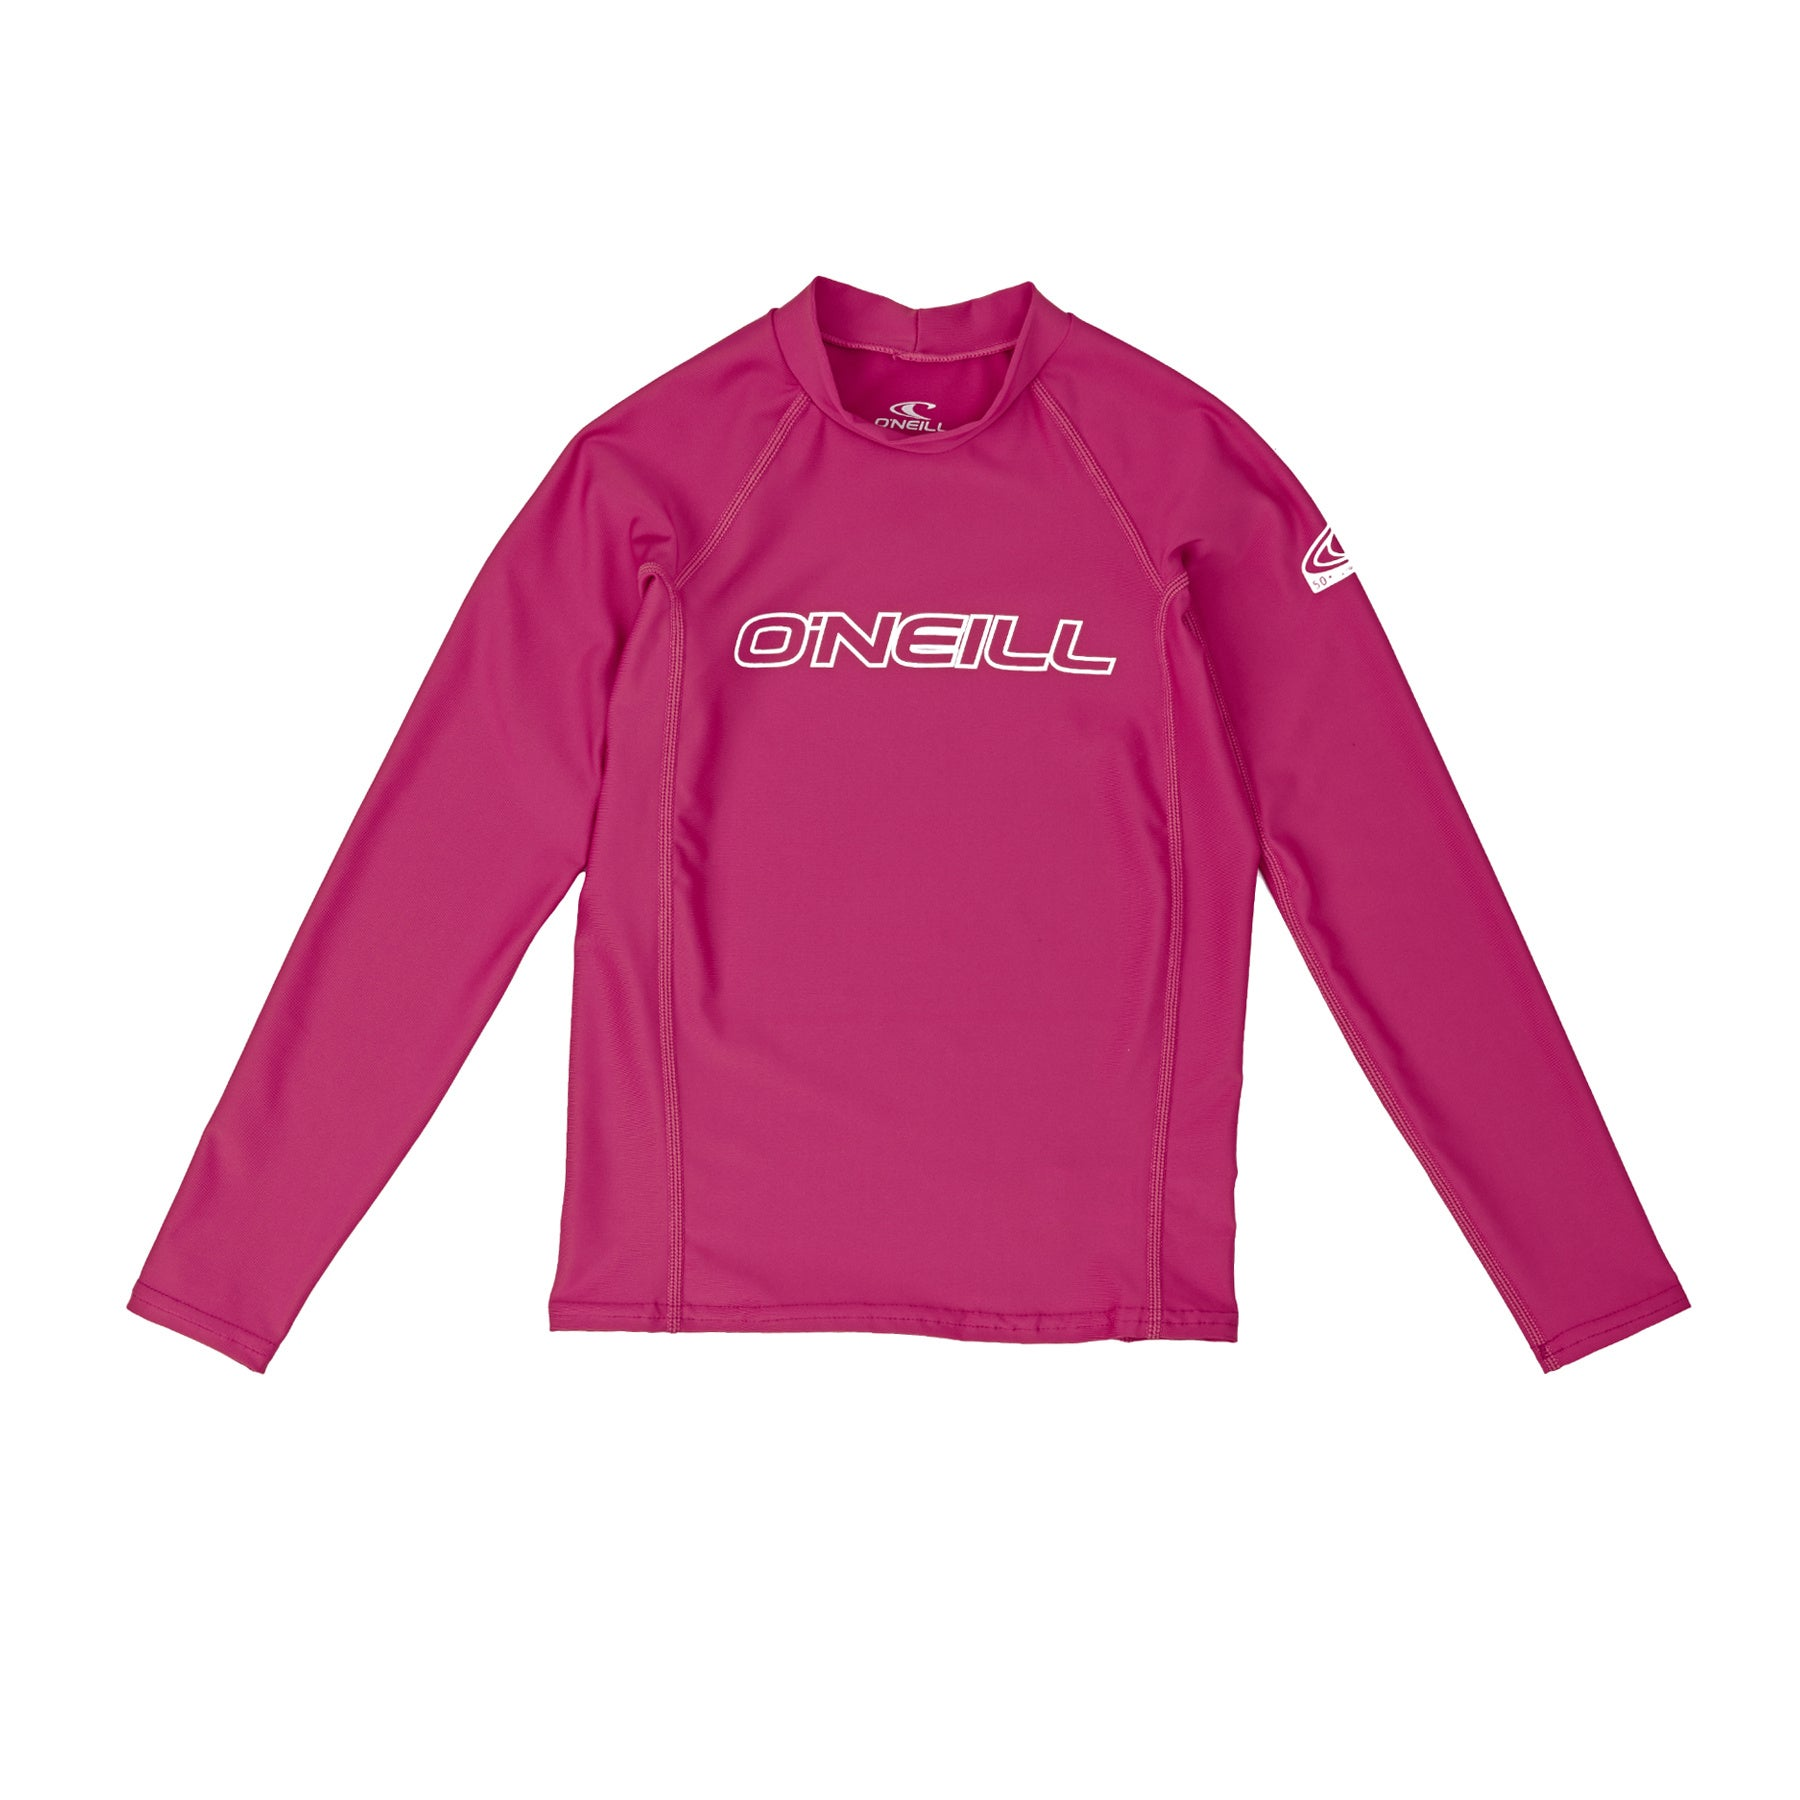 O Neill Basic Skins Long Sleeve Crew Girls Rash Vest - Watermelon